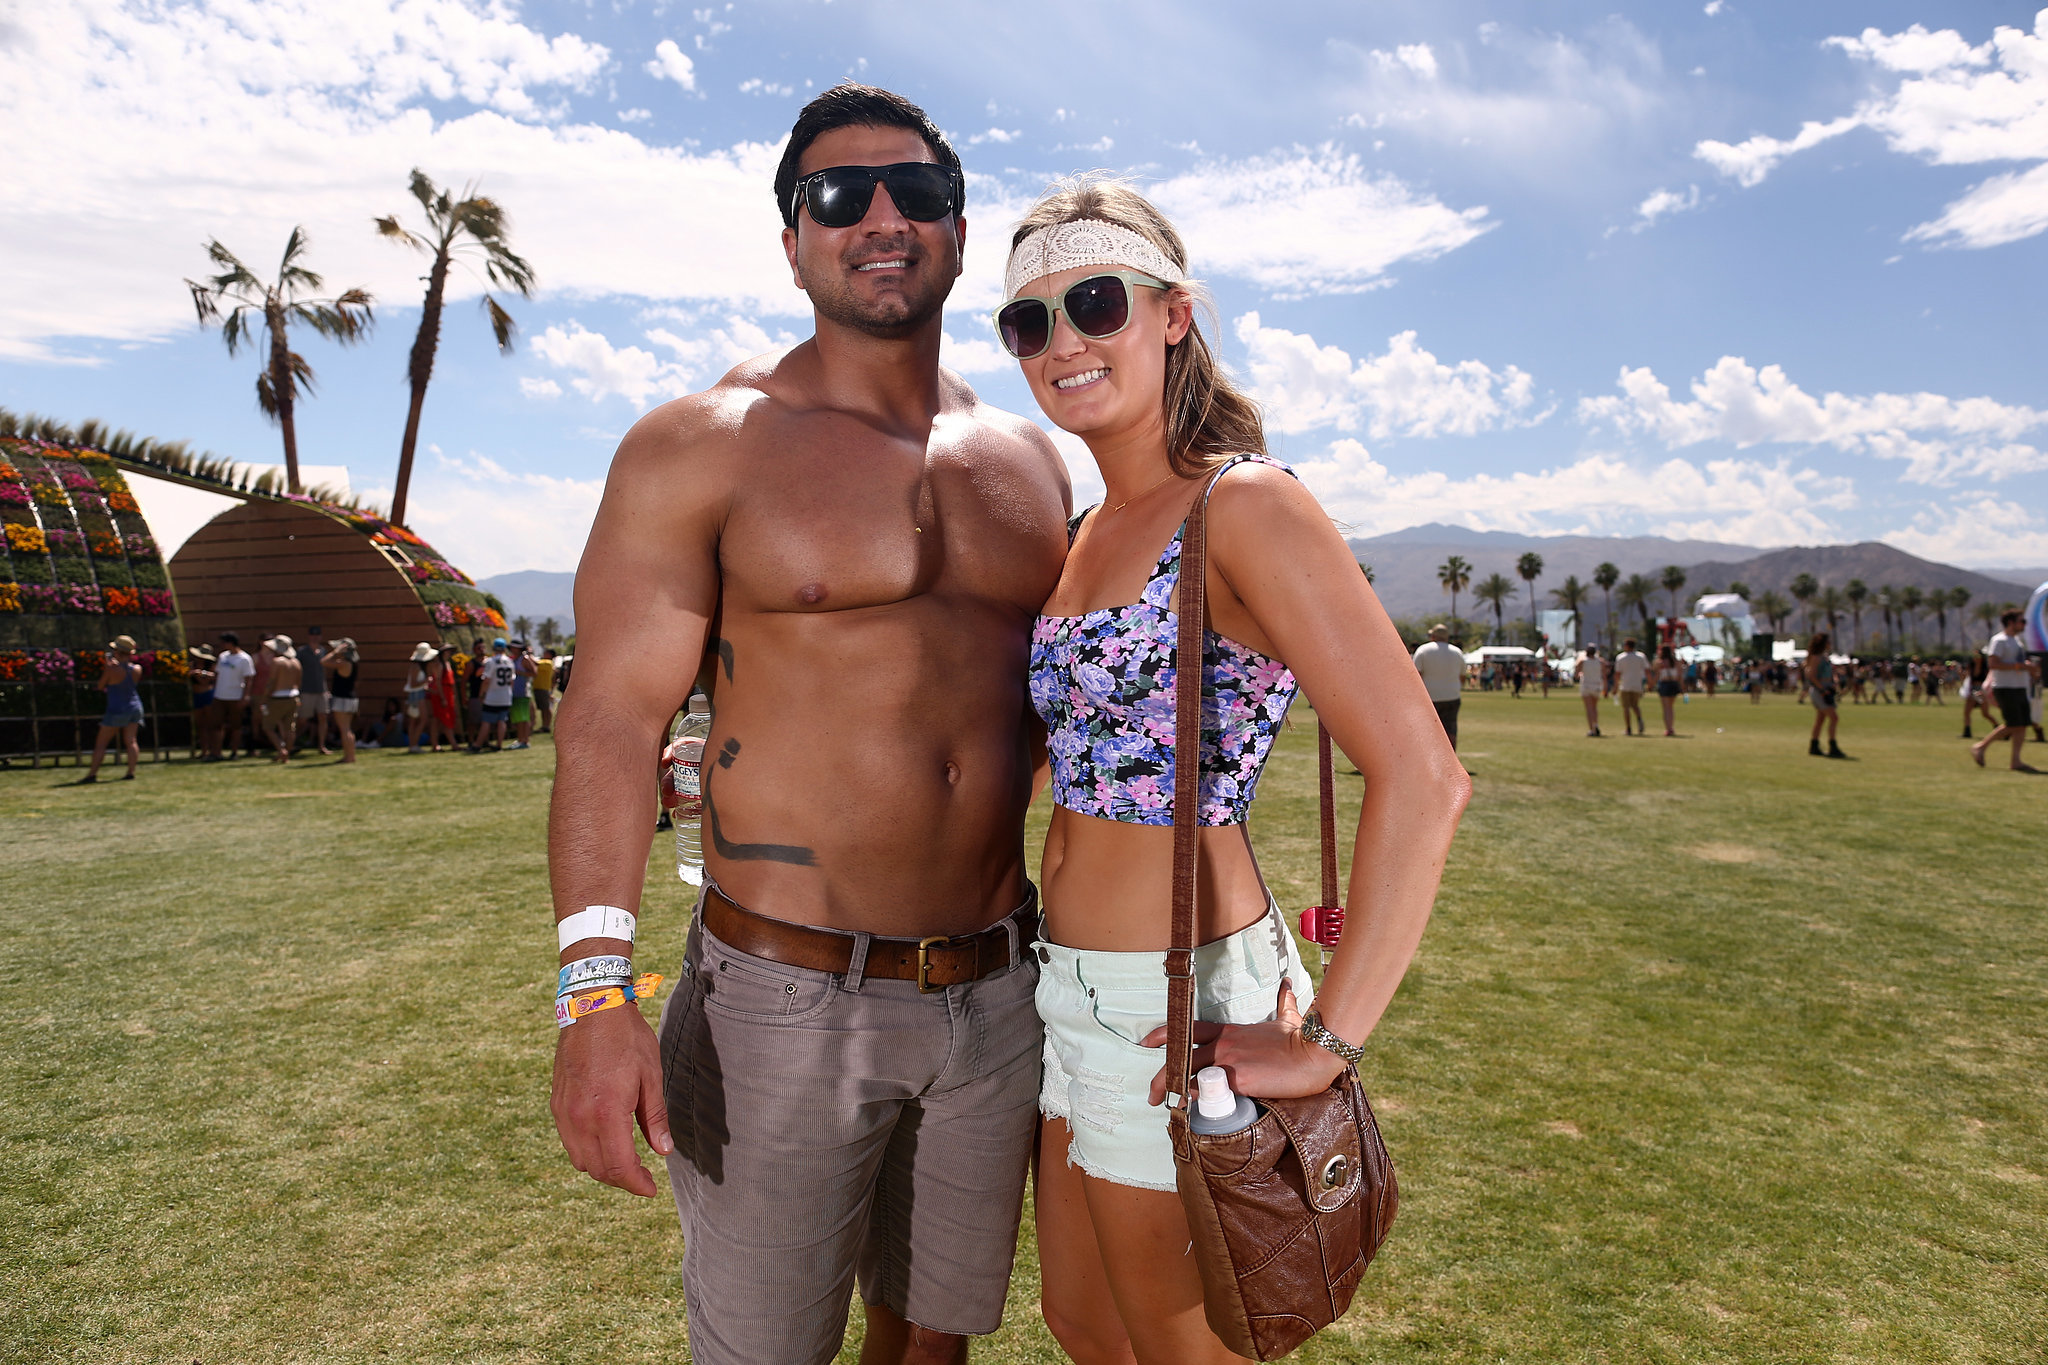 A pair posed at Coachella in 2014